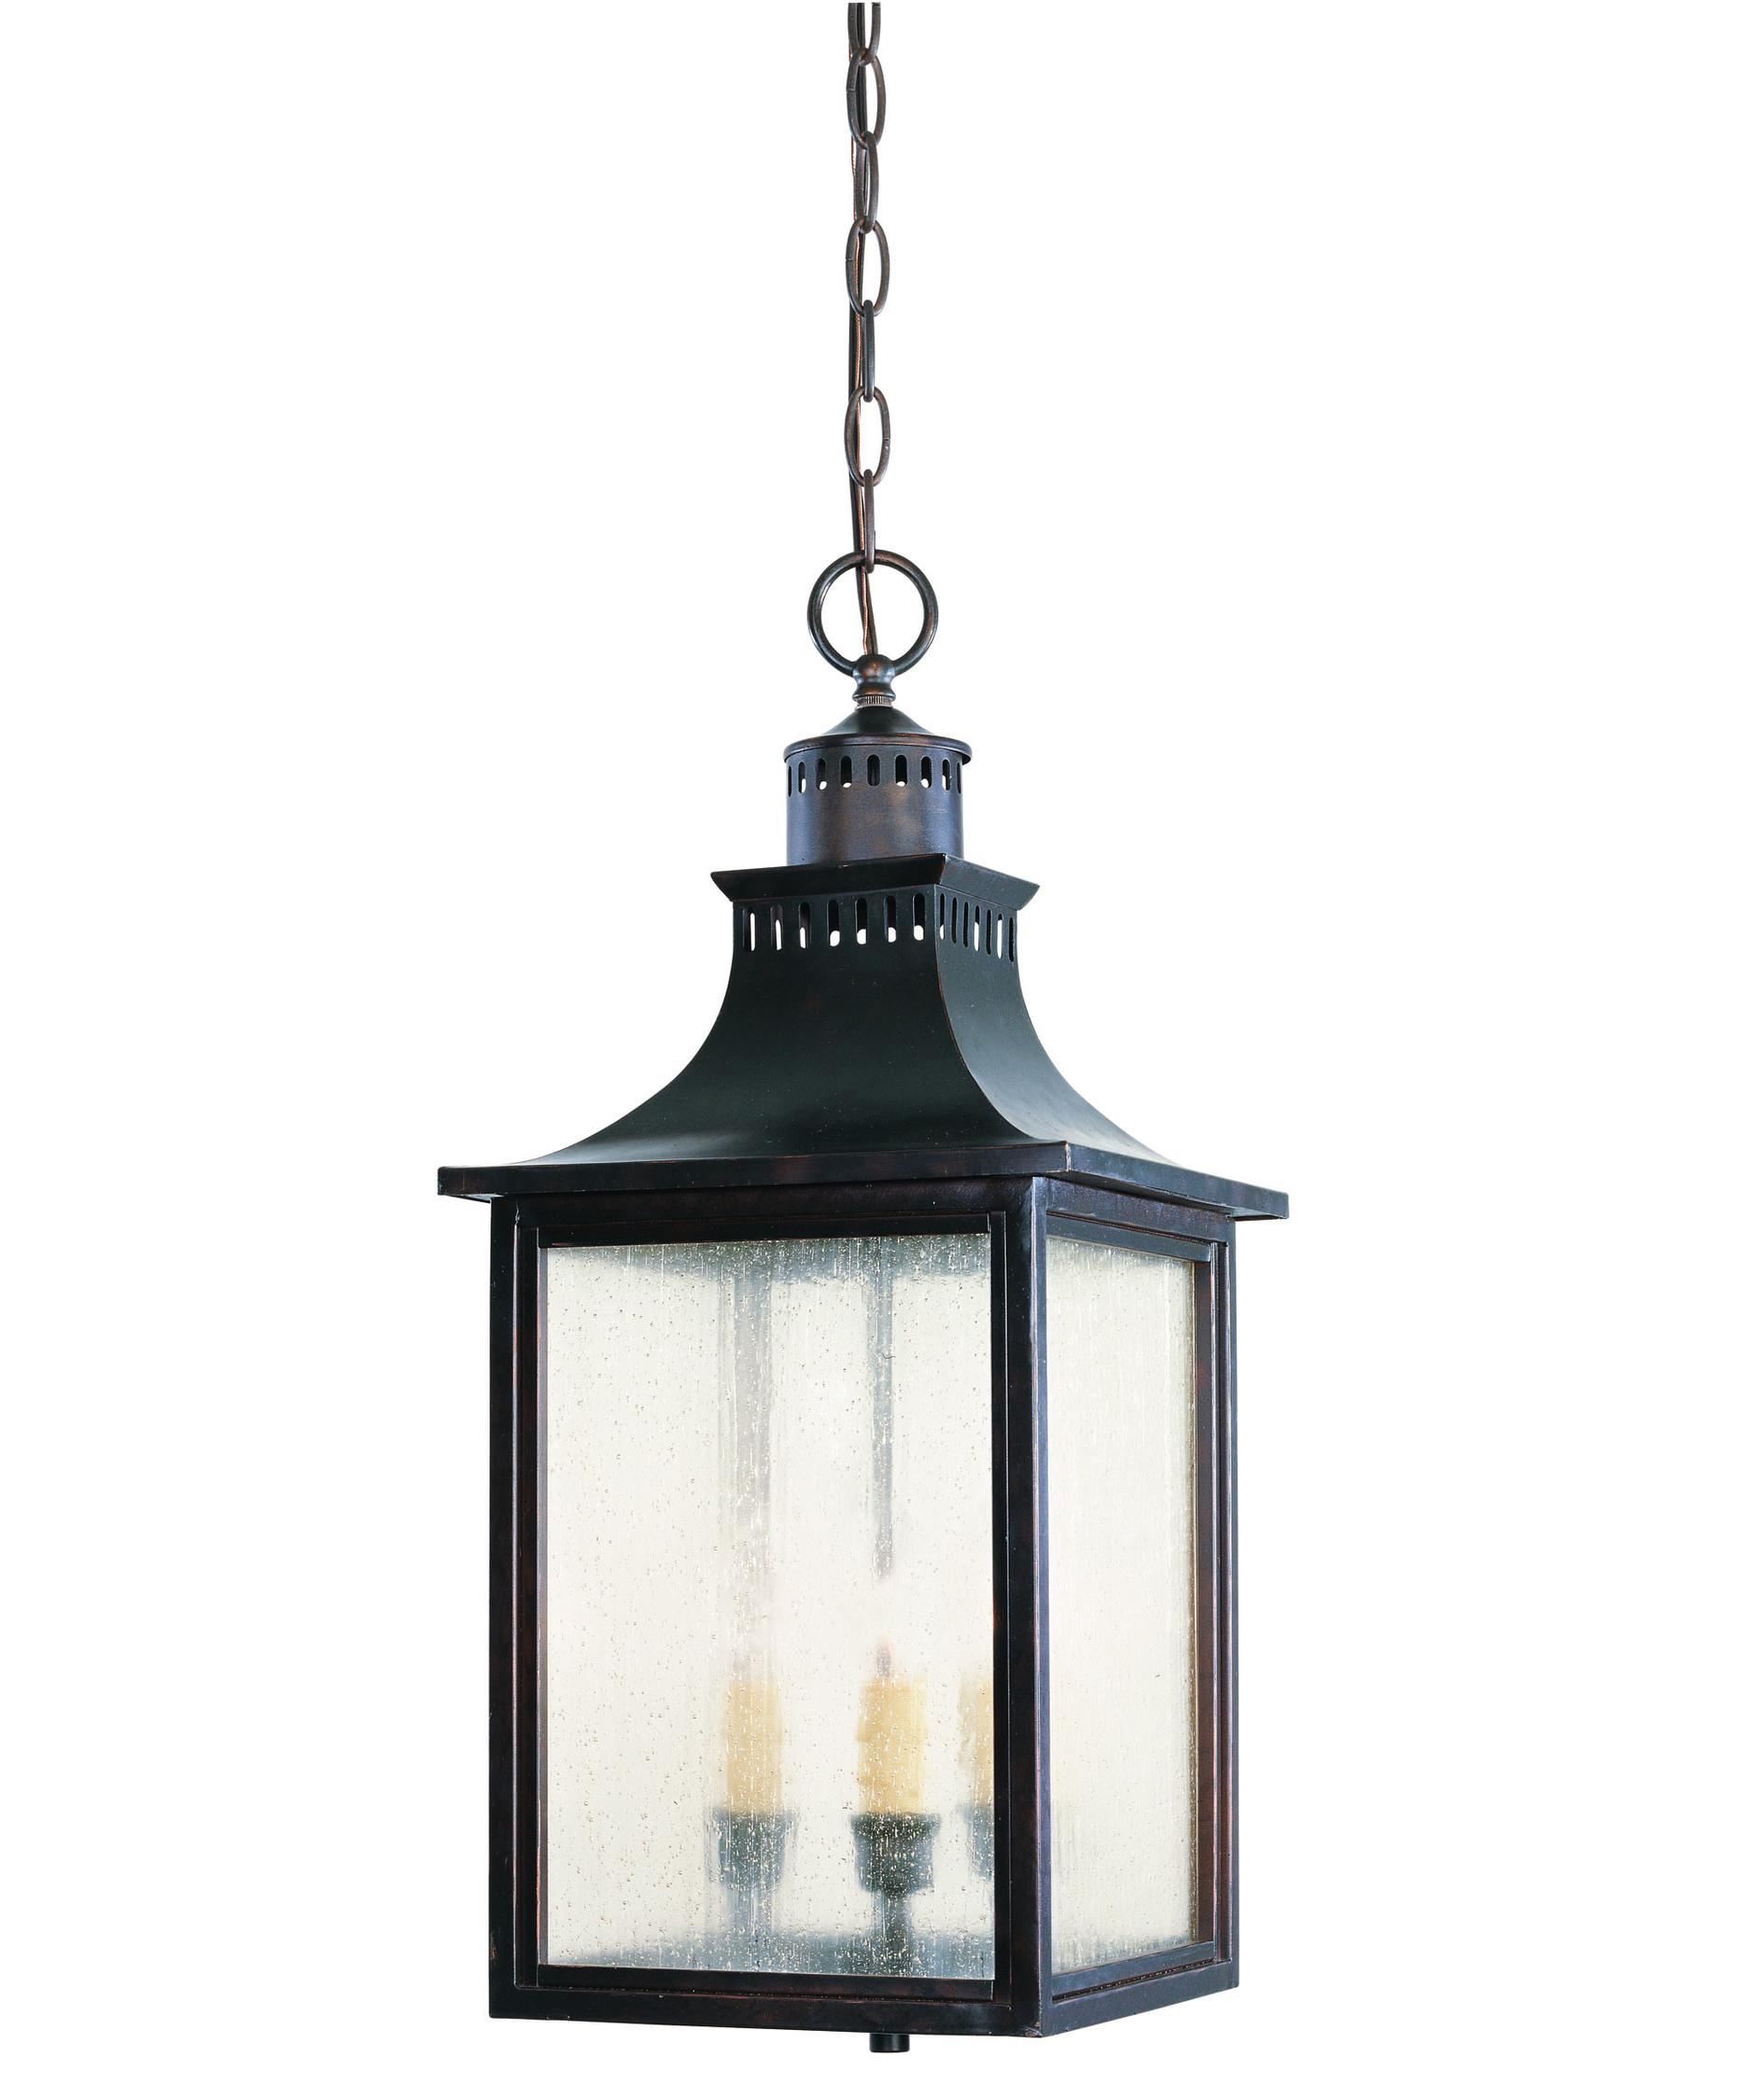 Outdoor hanging lamp - Shown In English Bronze Finish And Pale Cream Seeded Glass